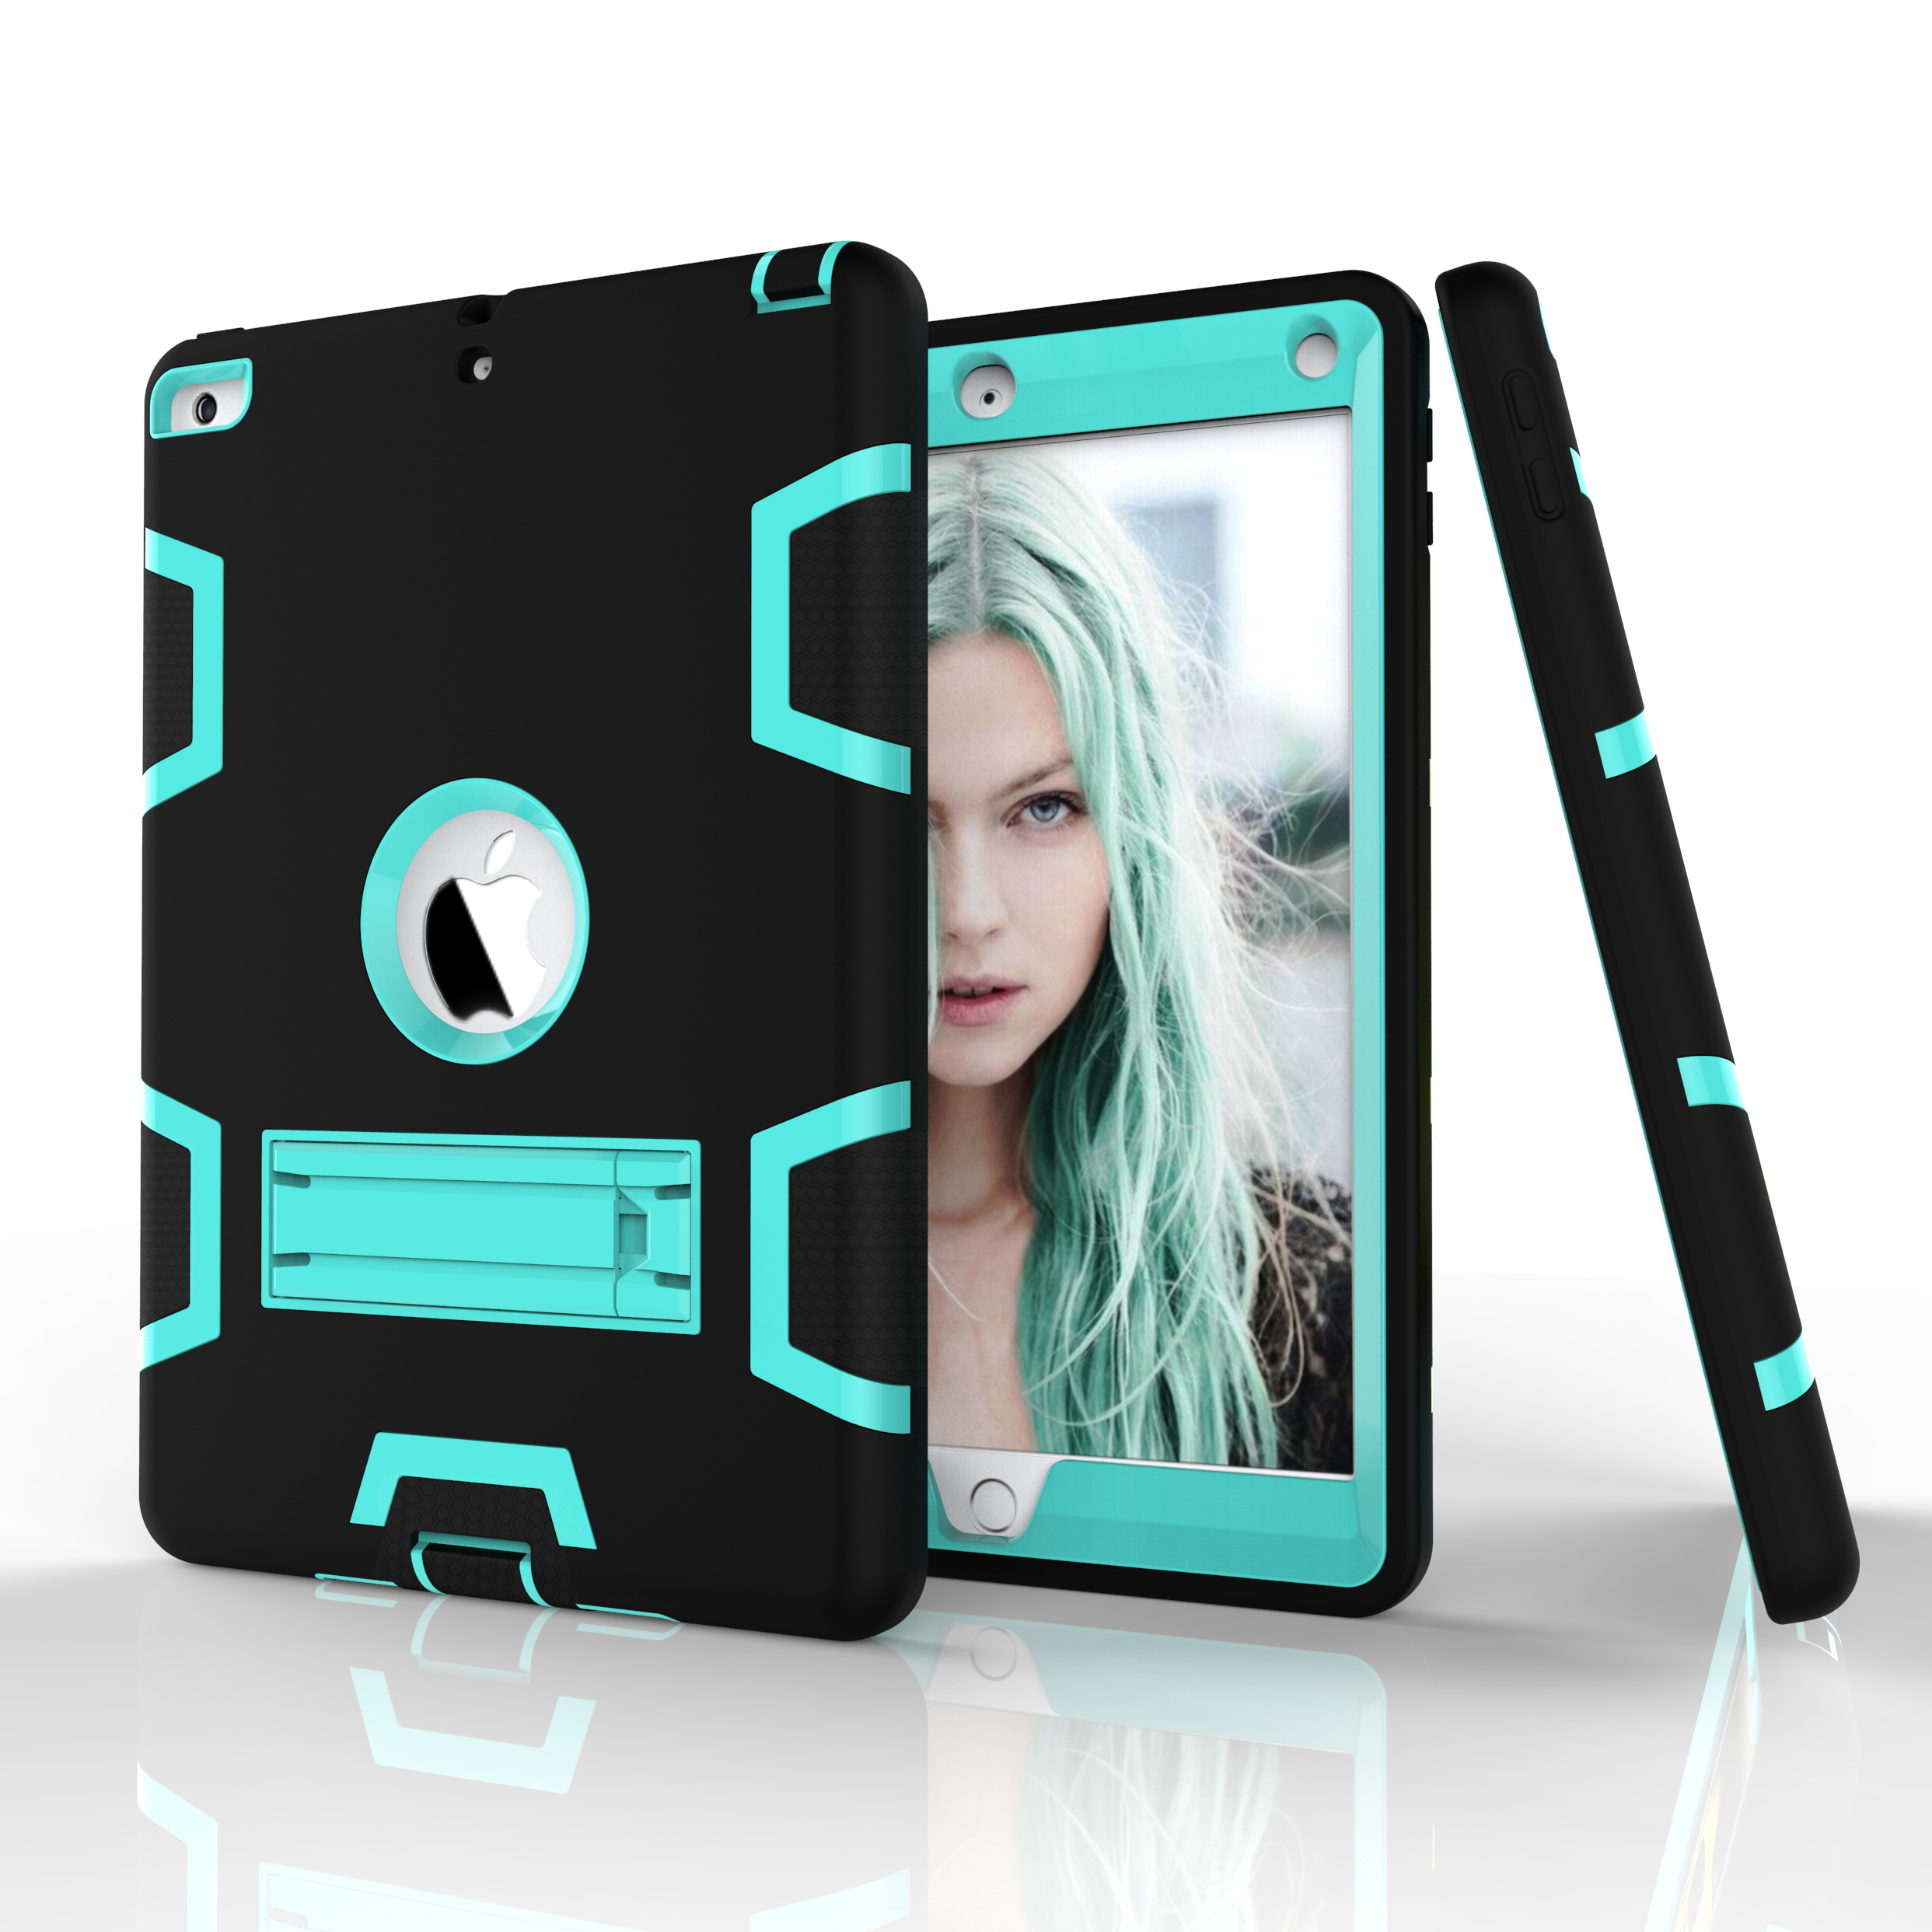 For iPad 2/3/4 PC+ Silicone Hit Color Armor Case Tri-proof Shockproof Dustproof Anti-fall Protective Cover  Black + mint green